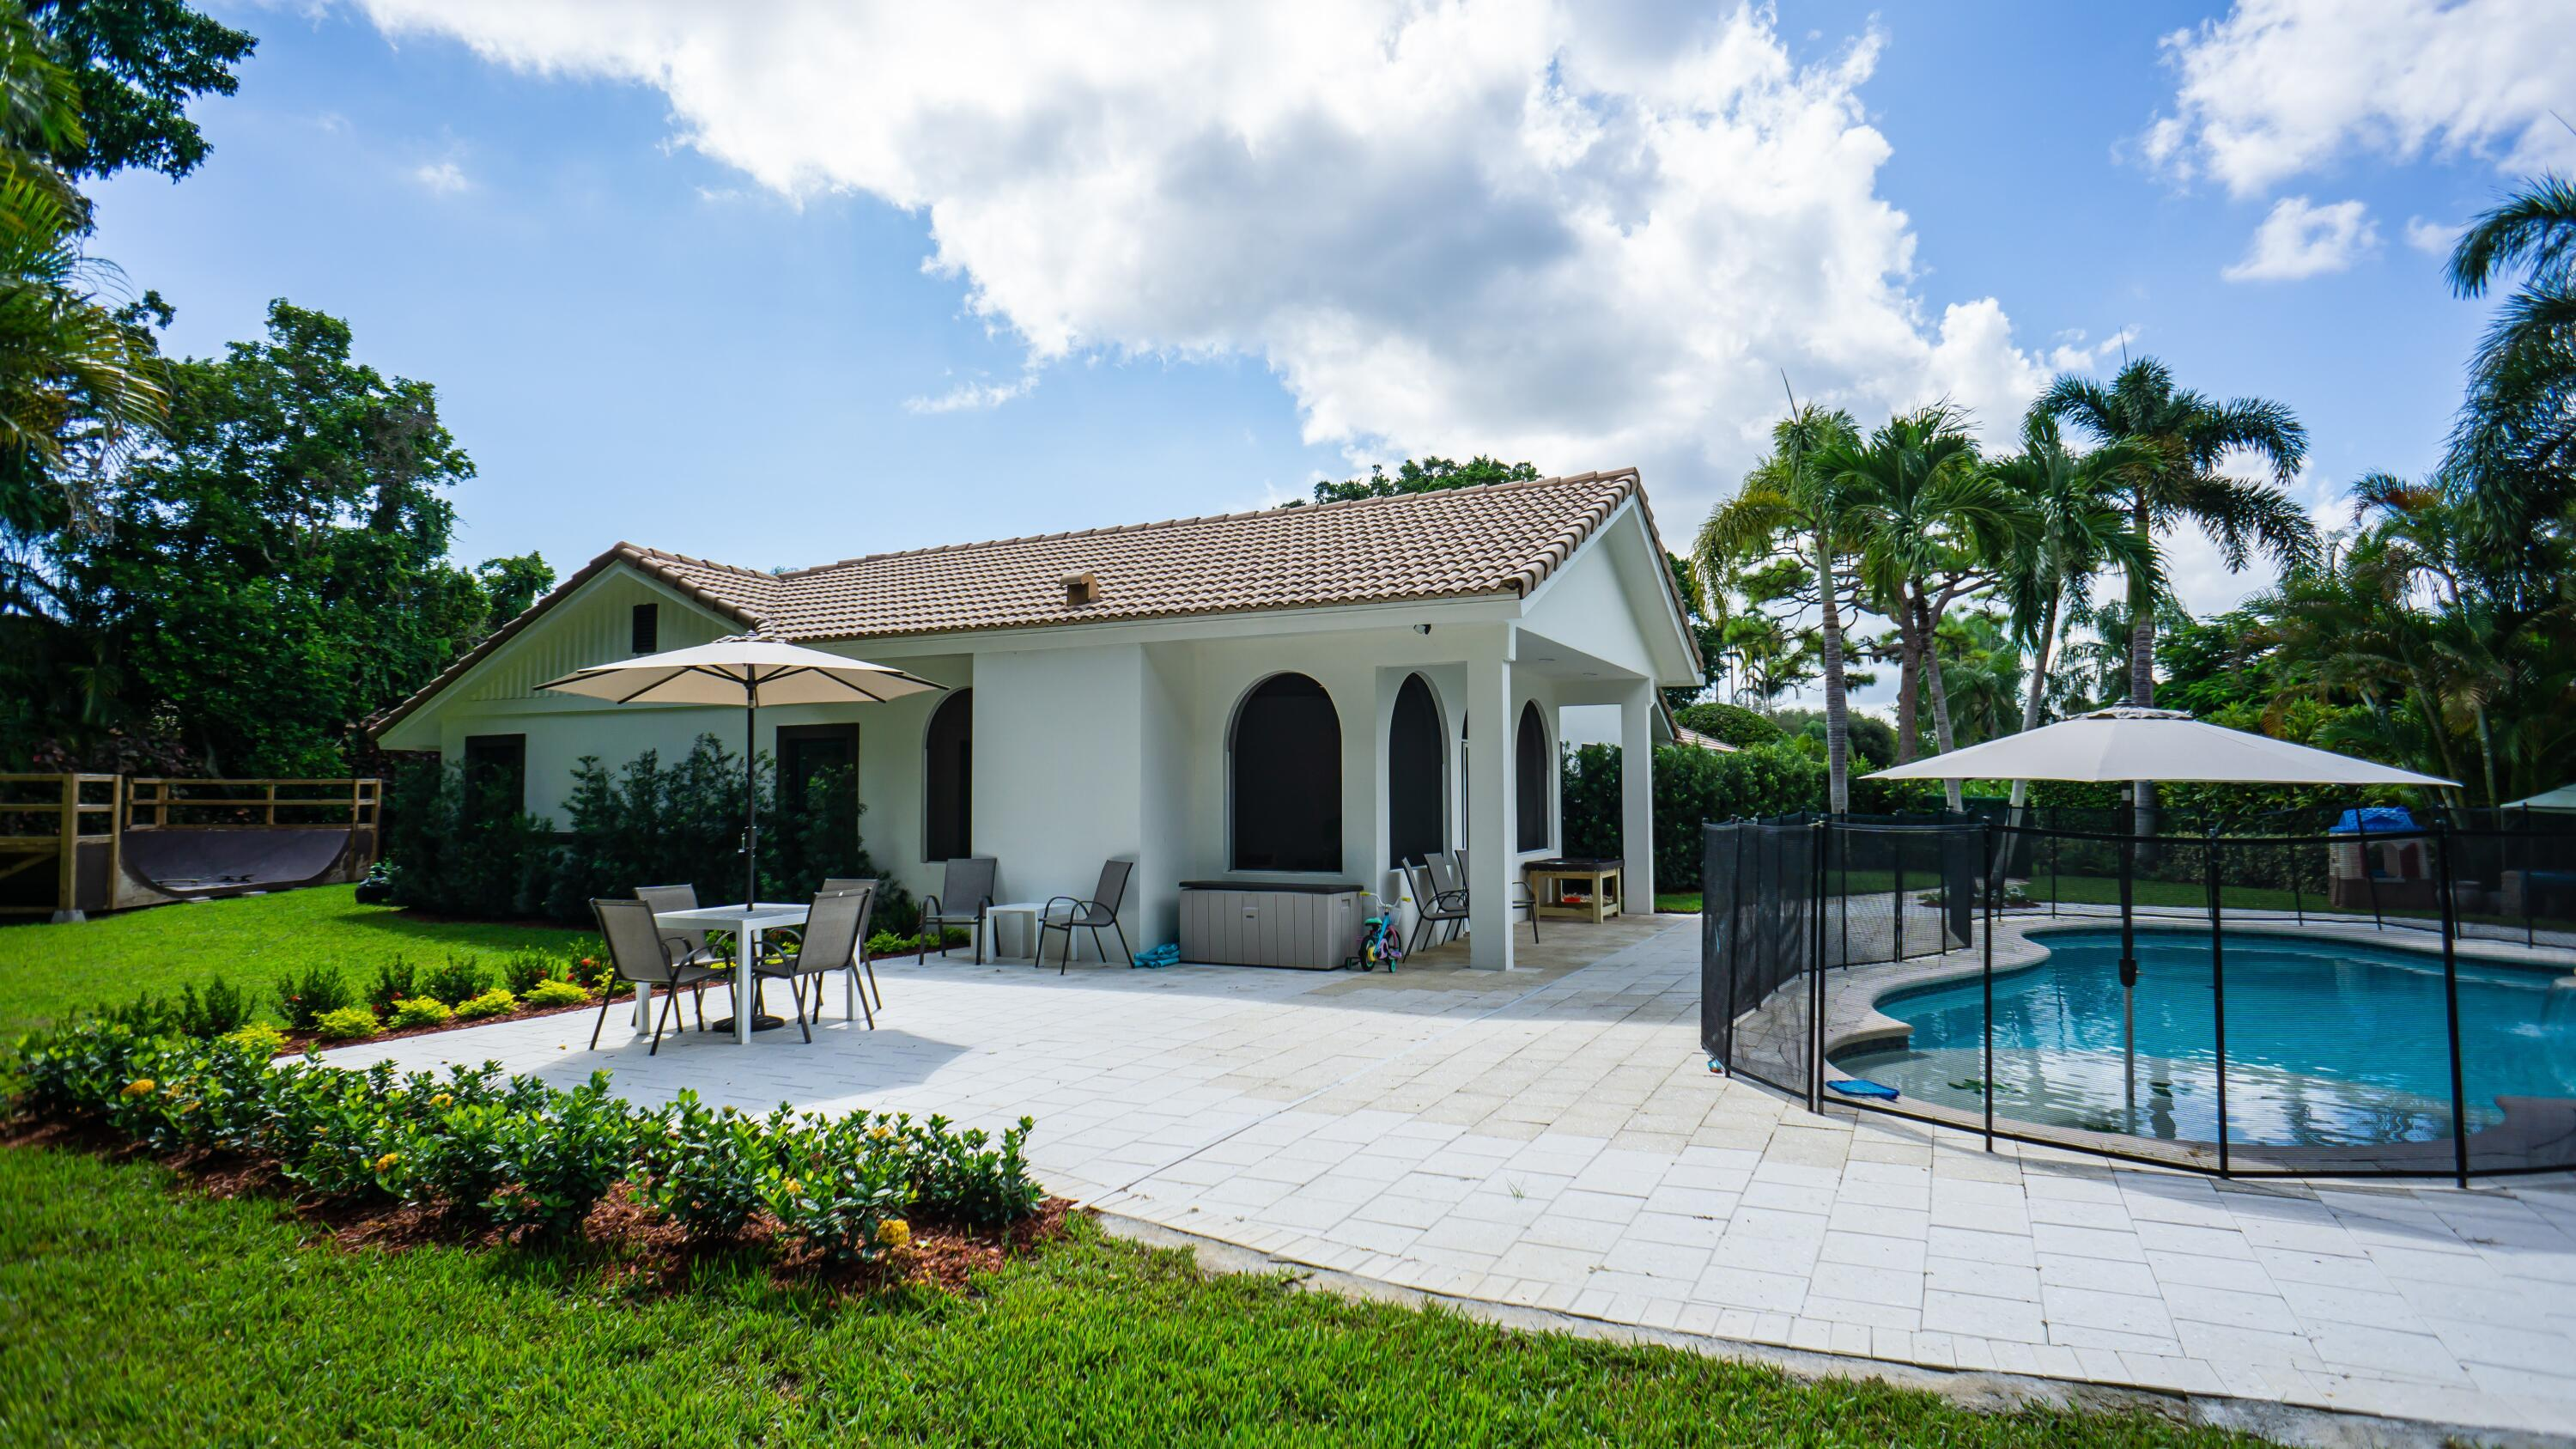 4651  Turnberry Court  For Sale 10752559, FL